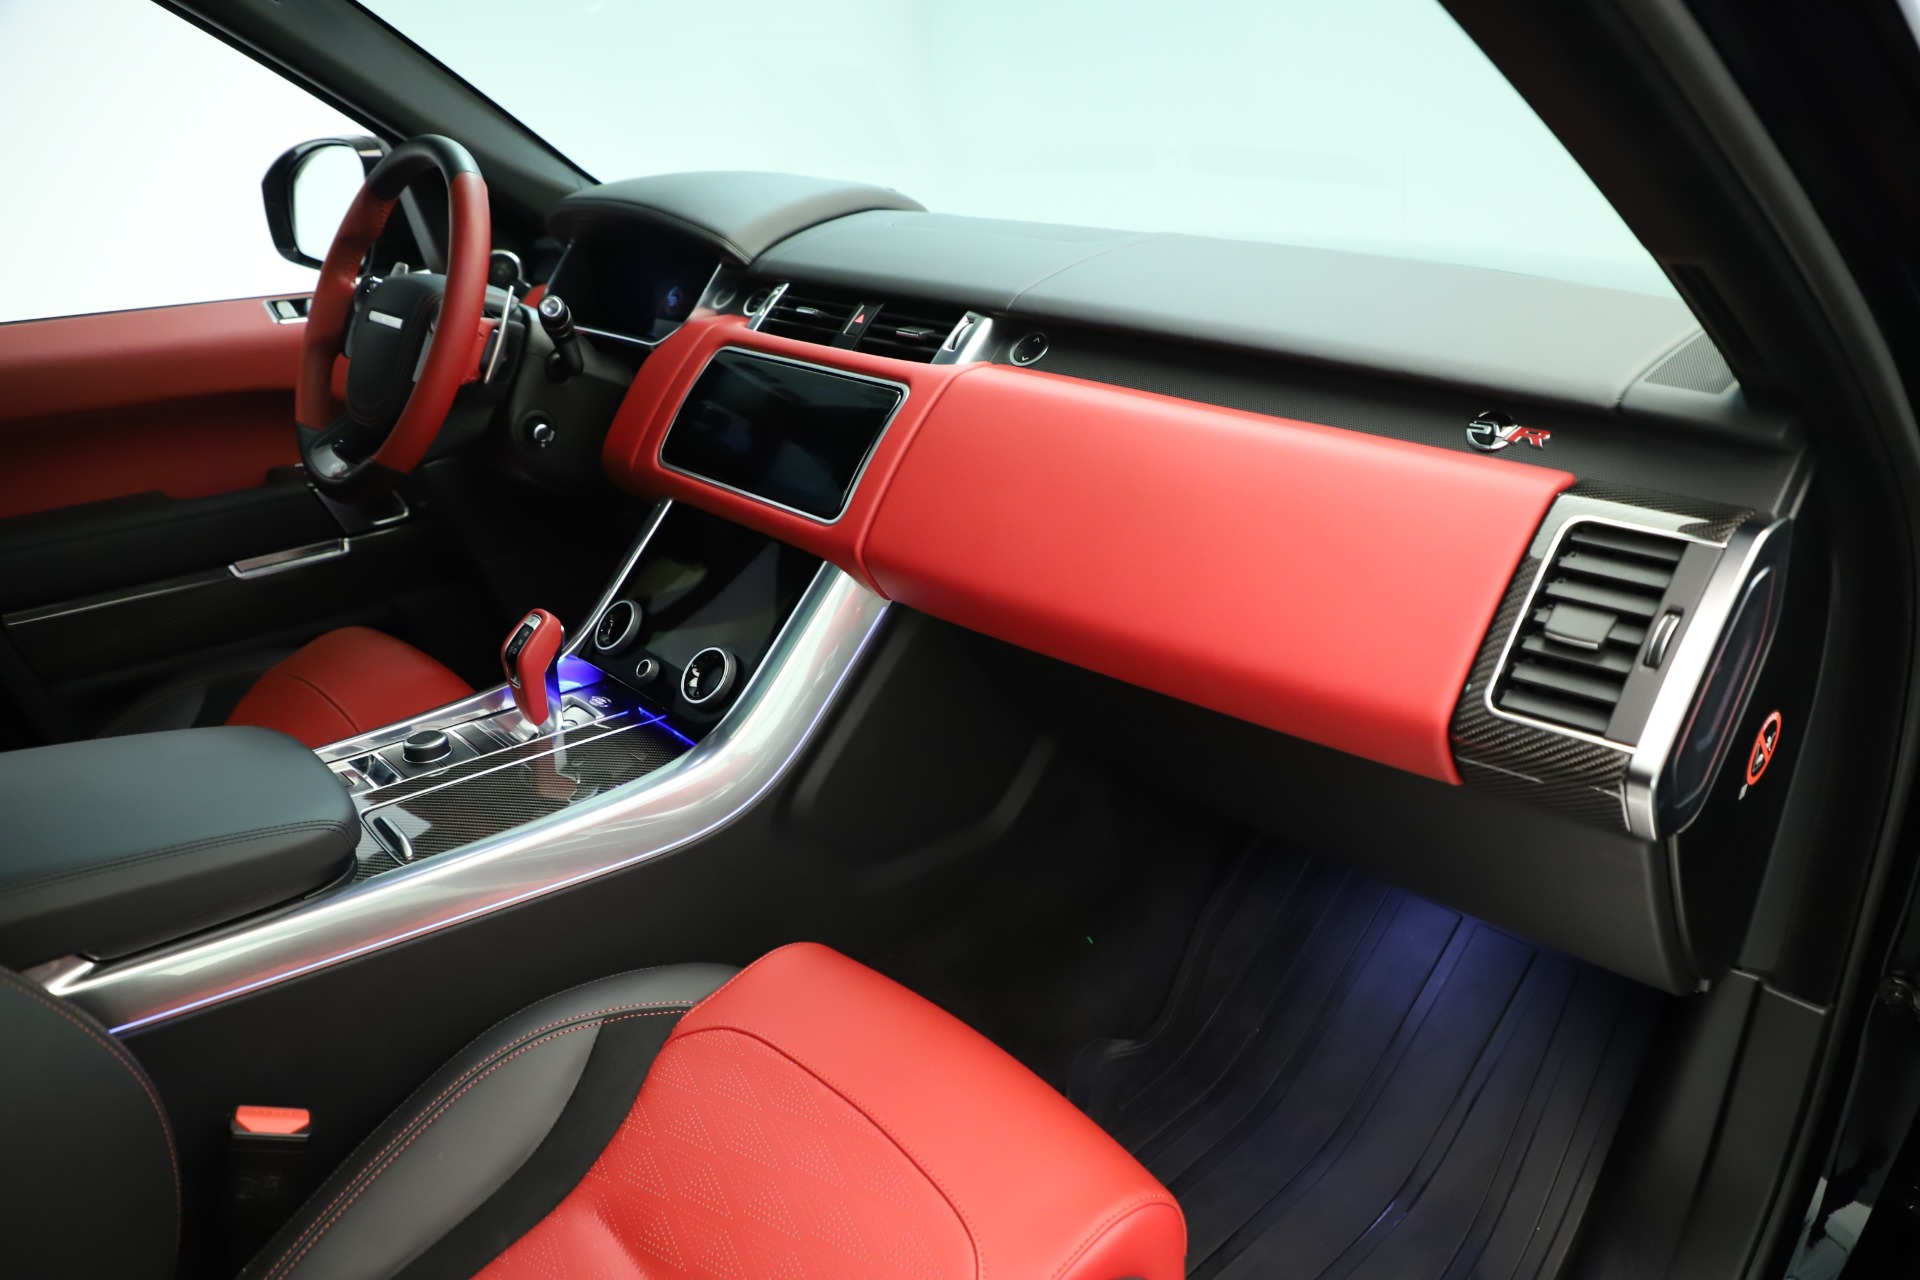 Used 2019 Land Rover Range Rover Sport SVR For Sale In Greenwich, CT 3353_p18